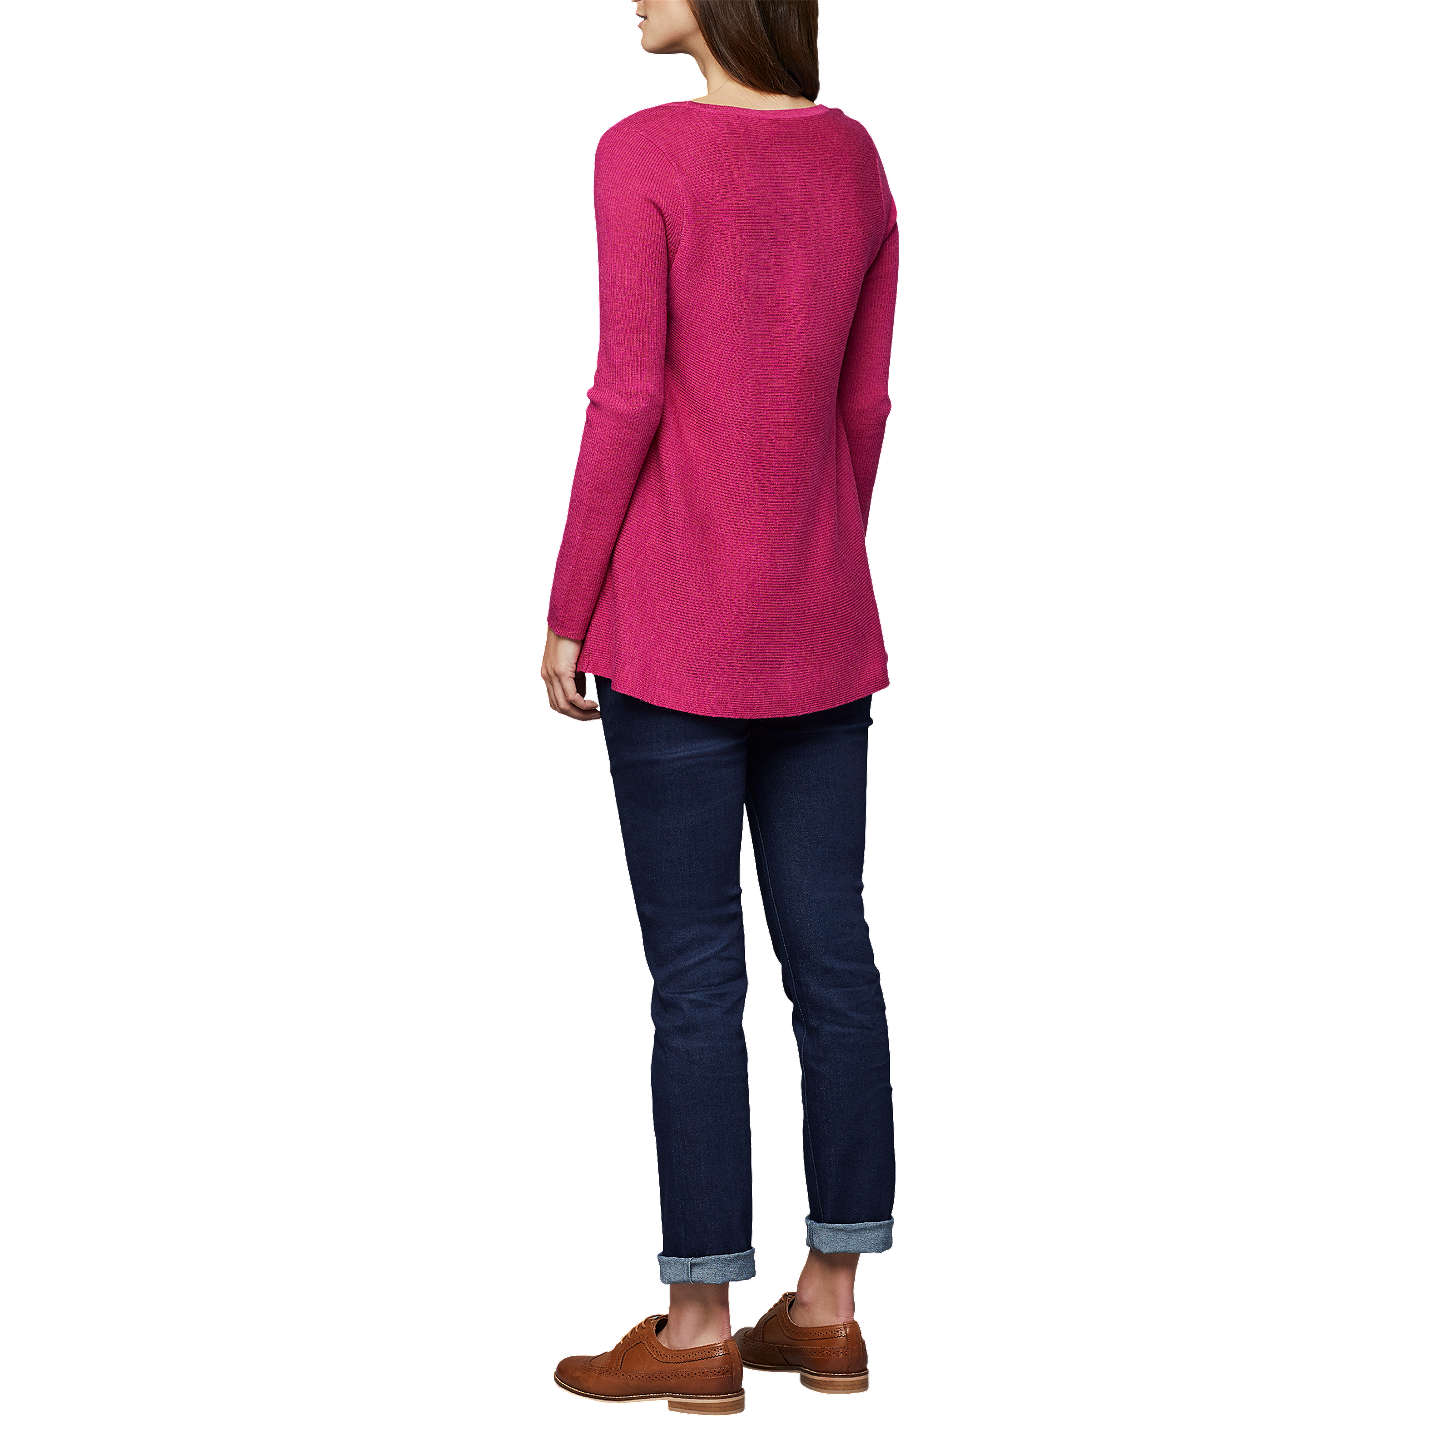 BuyEast Merino Wool Swing Jumper, Magenta, S Online at johnlewis.com